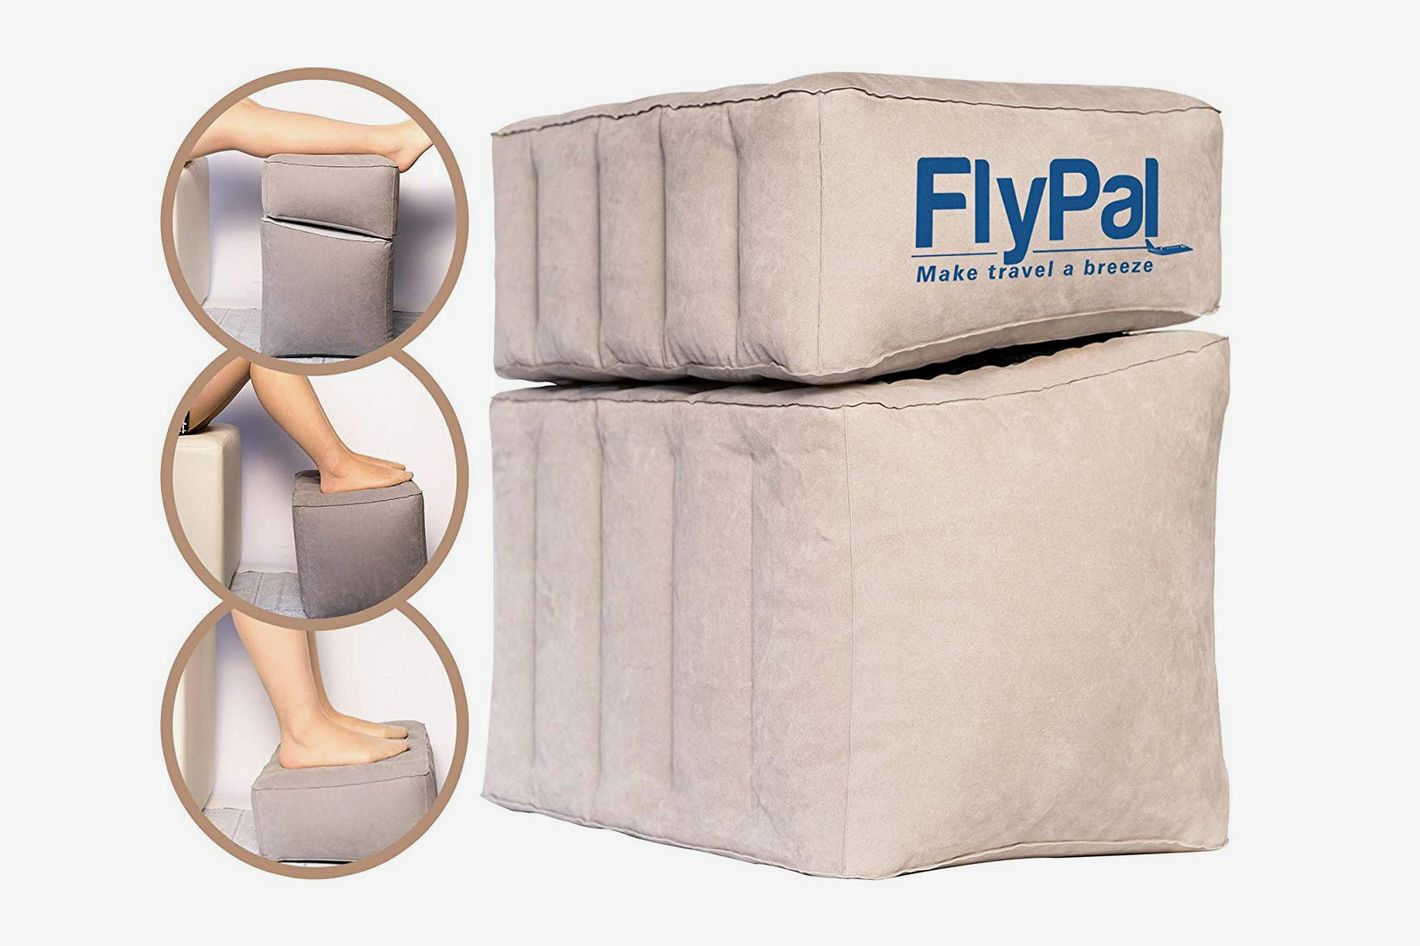 FlyPal Travel Foot Rest